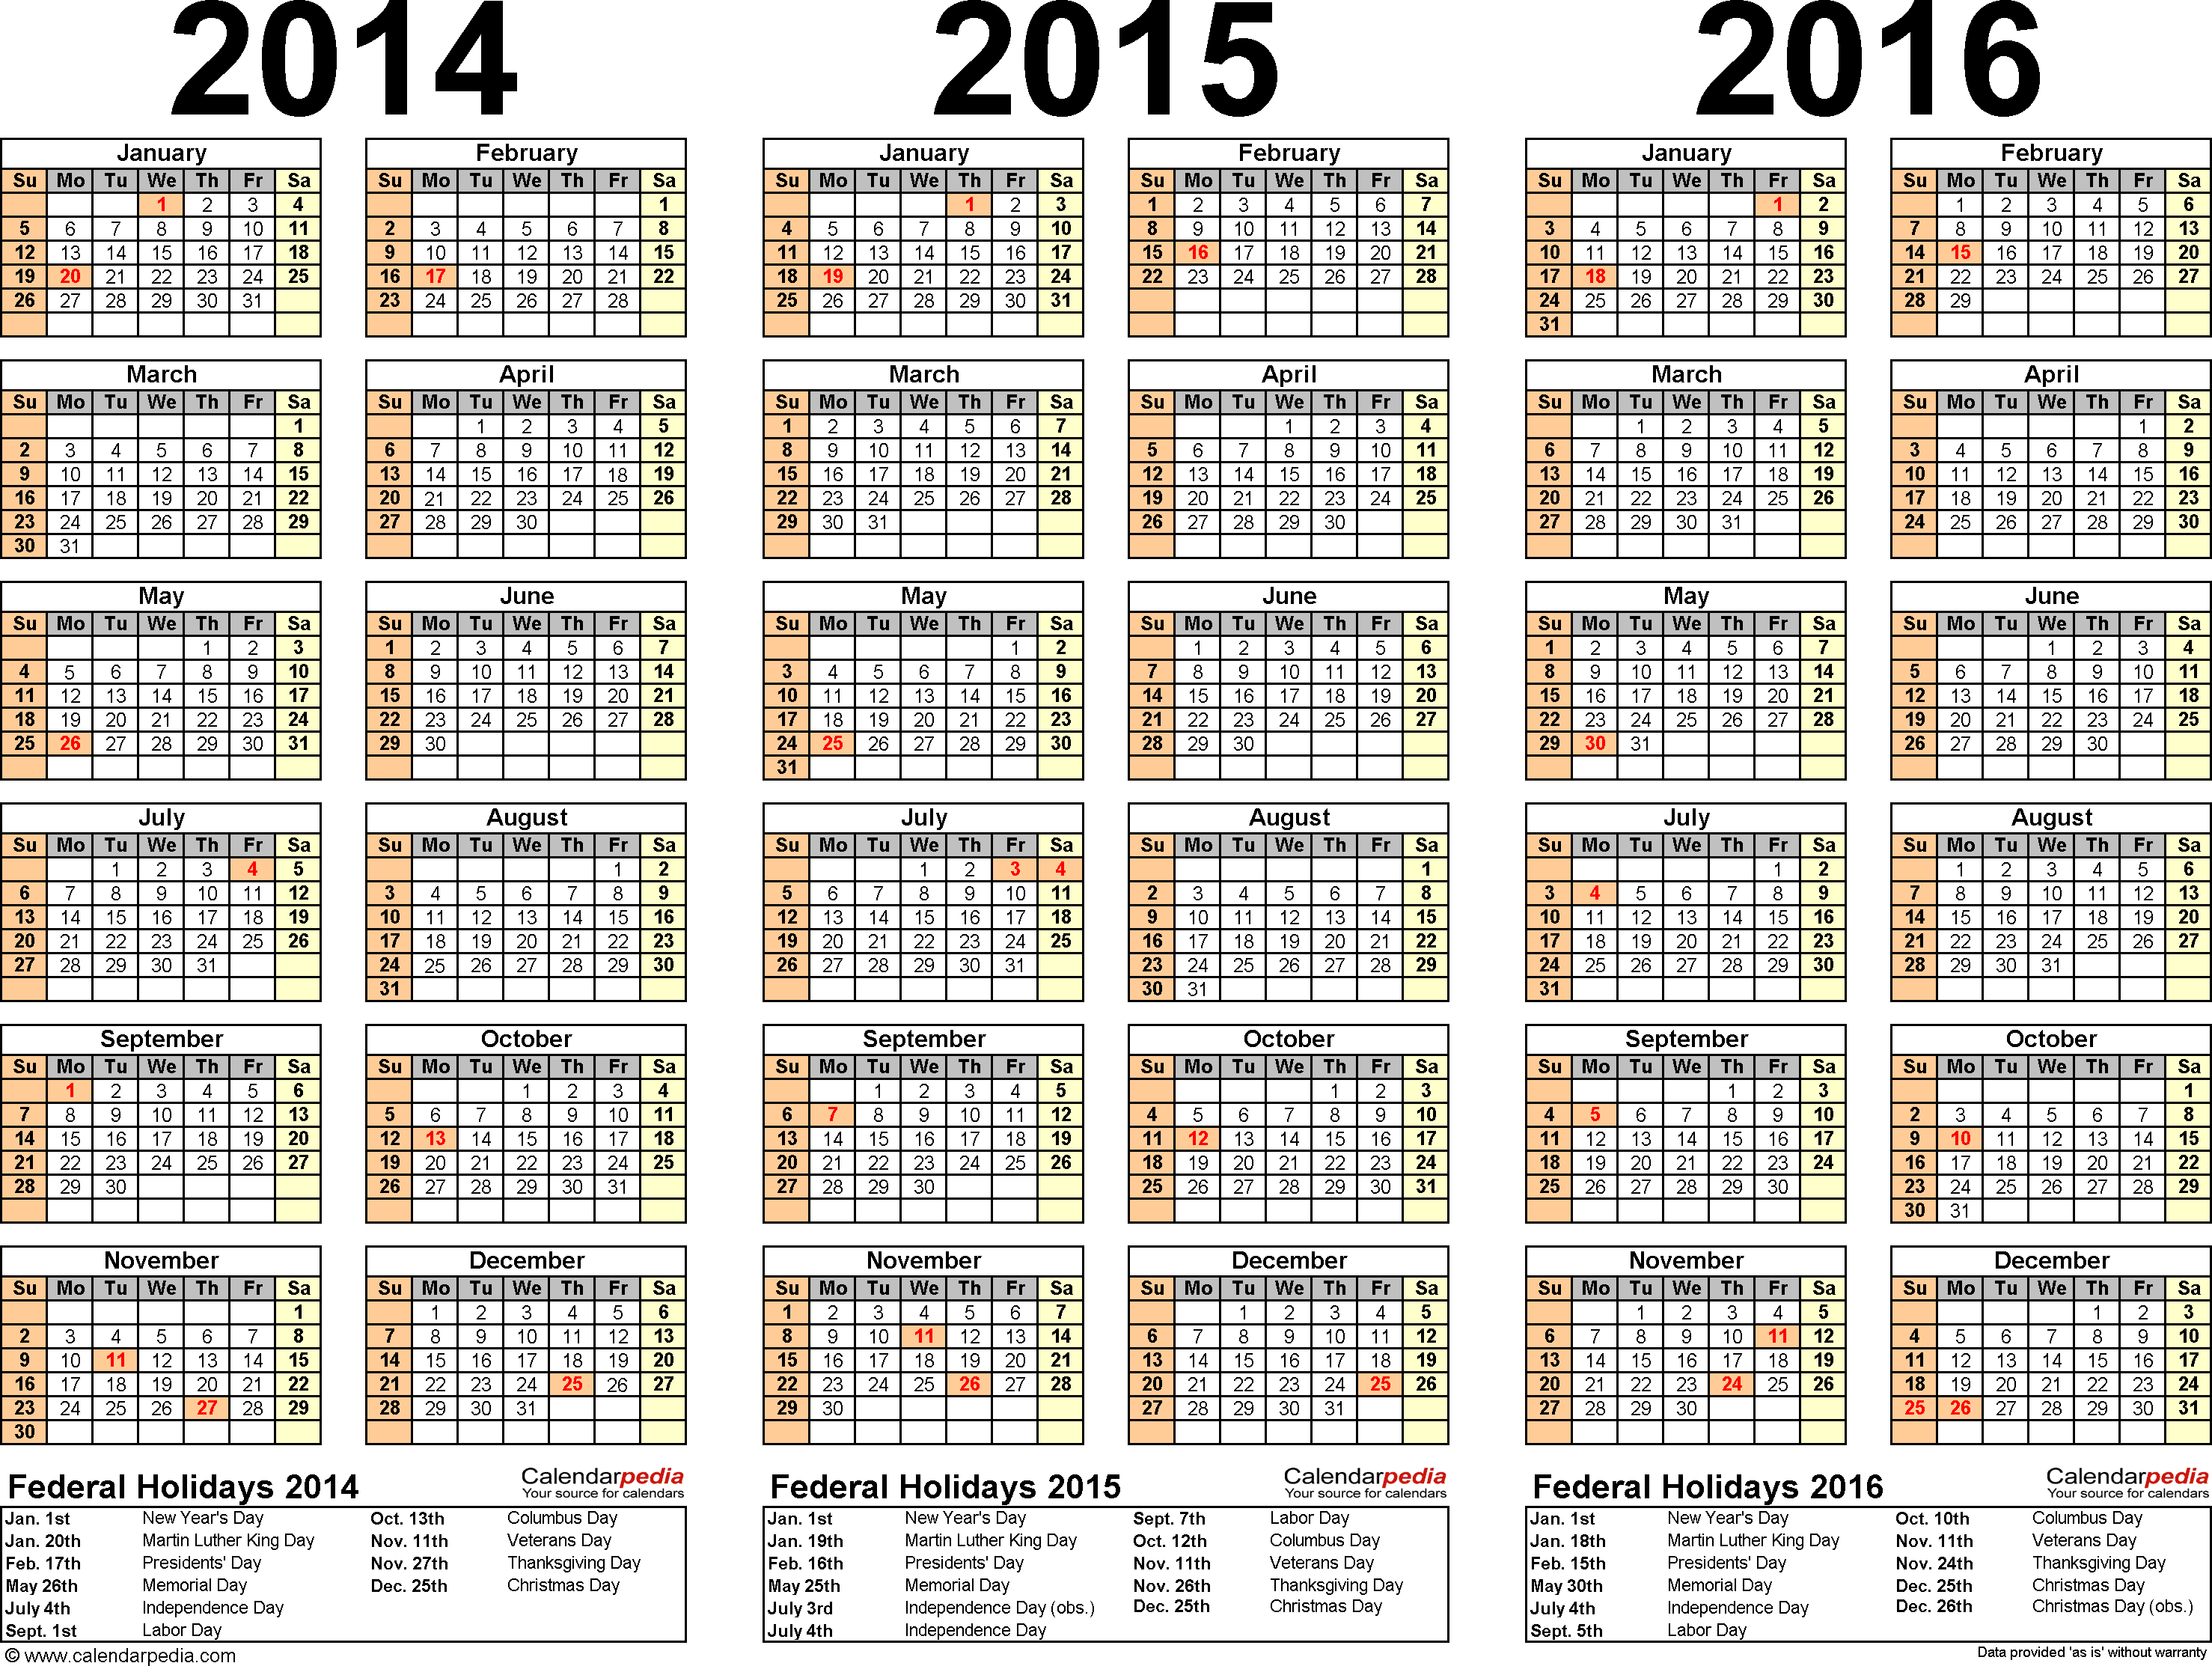 Template 2: PDF template for three year calendar 2014-2016 (landscape orientation, 1 page)